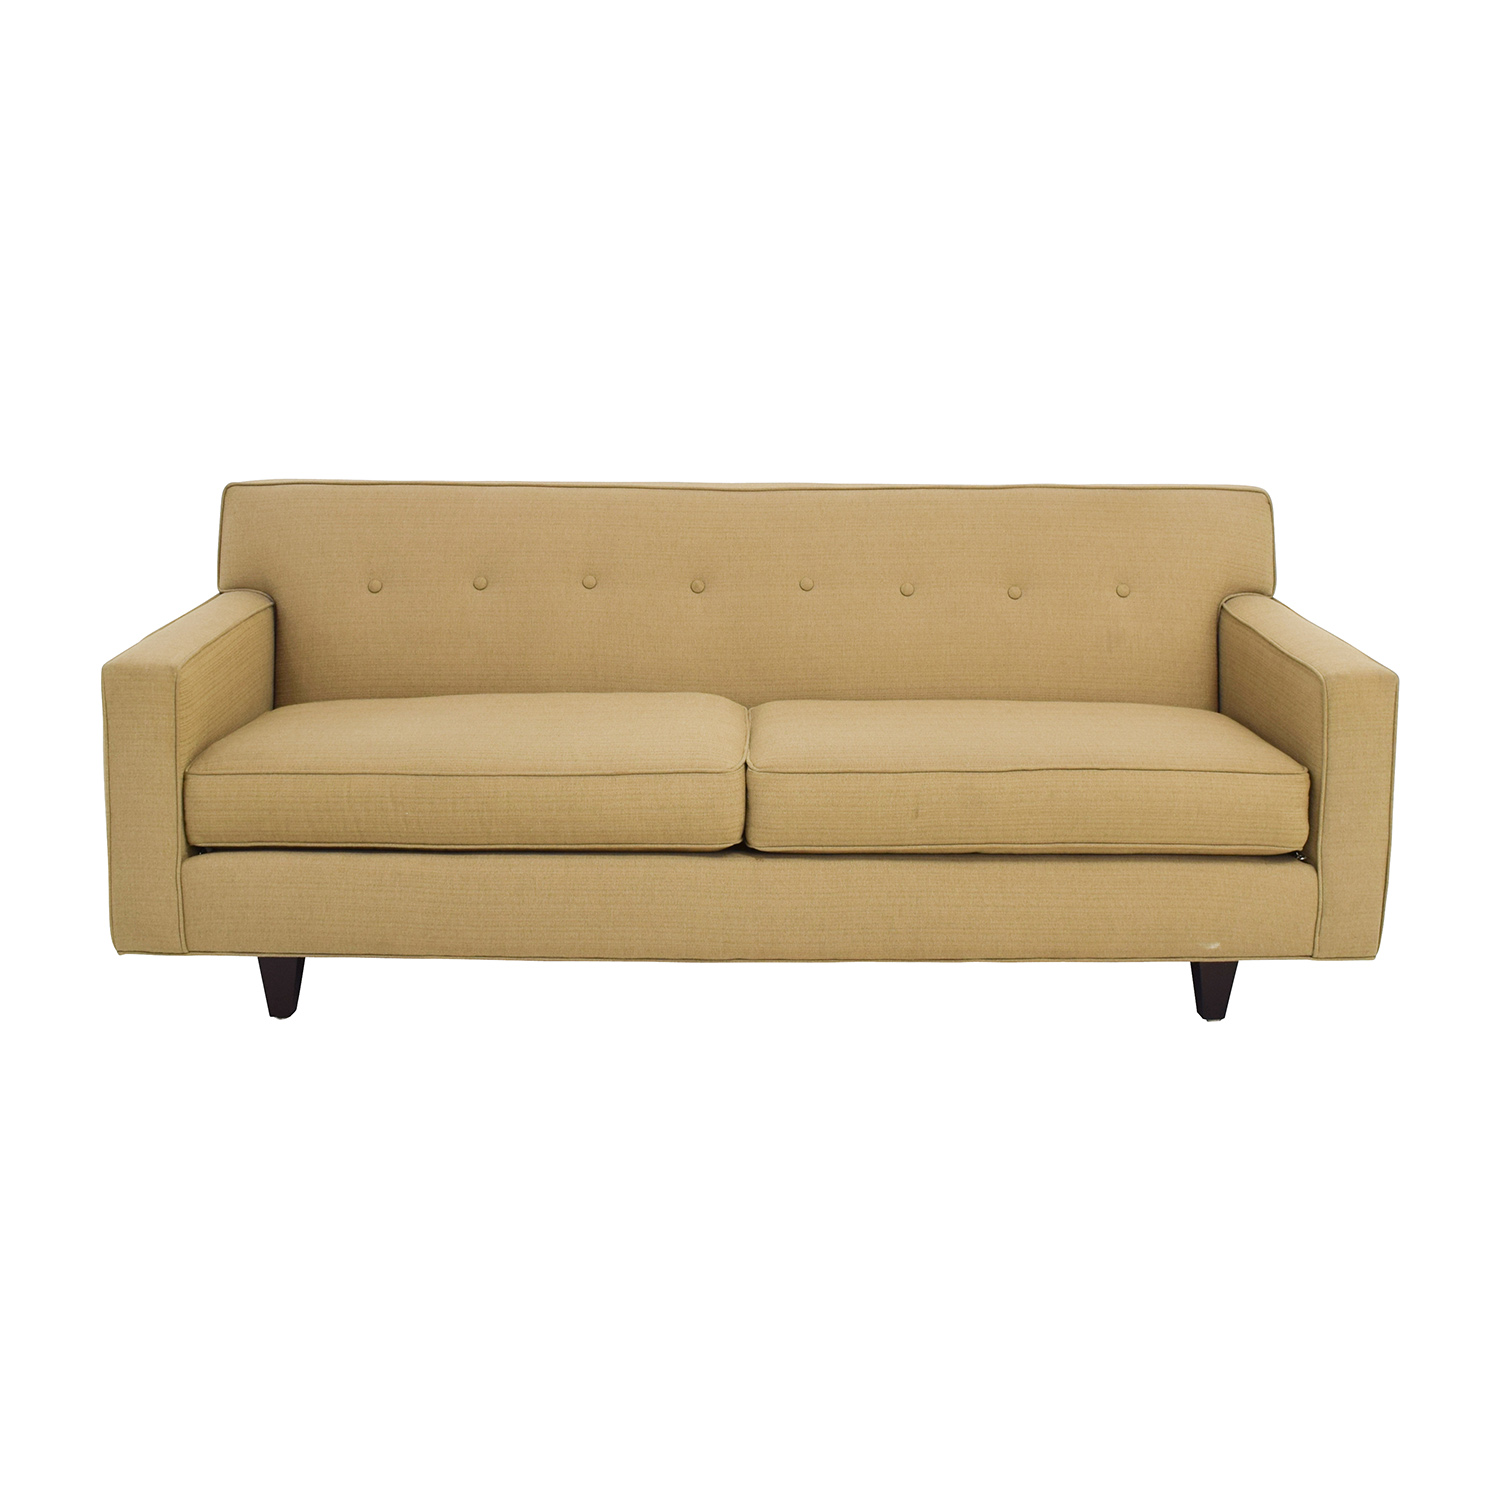 shop Rowe Furniture Rowe Furniture Contemporary Dorset Oatmeal Sofa online